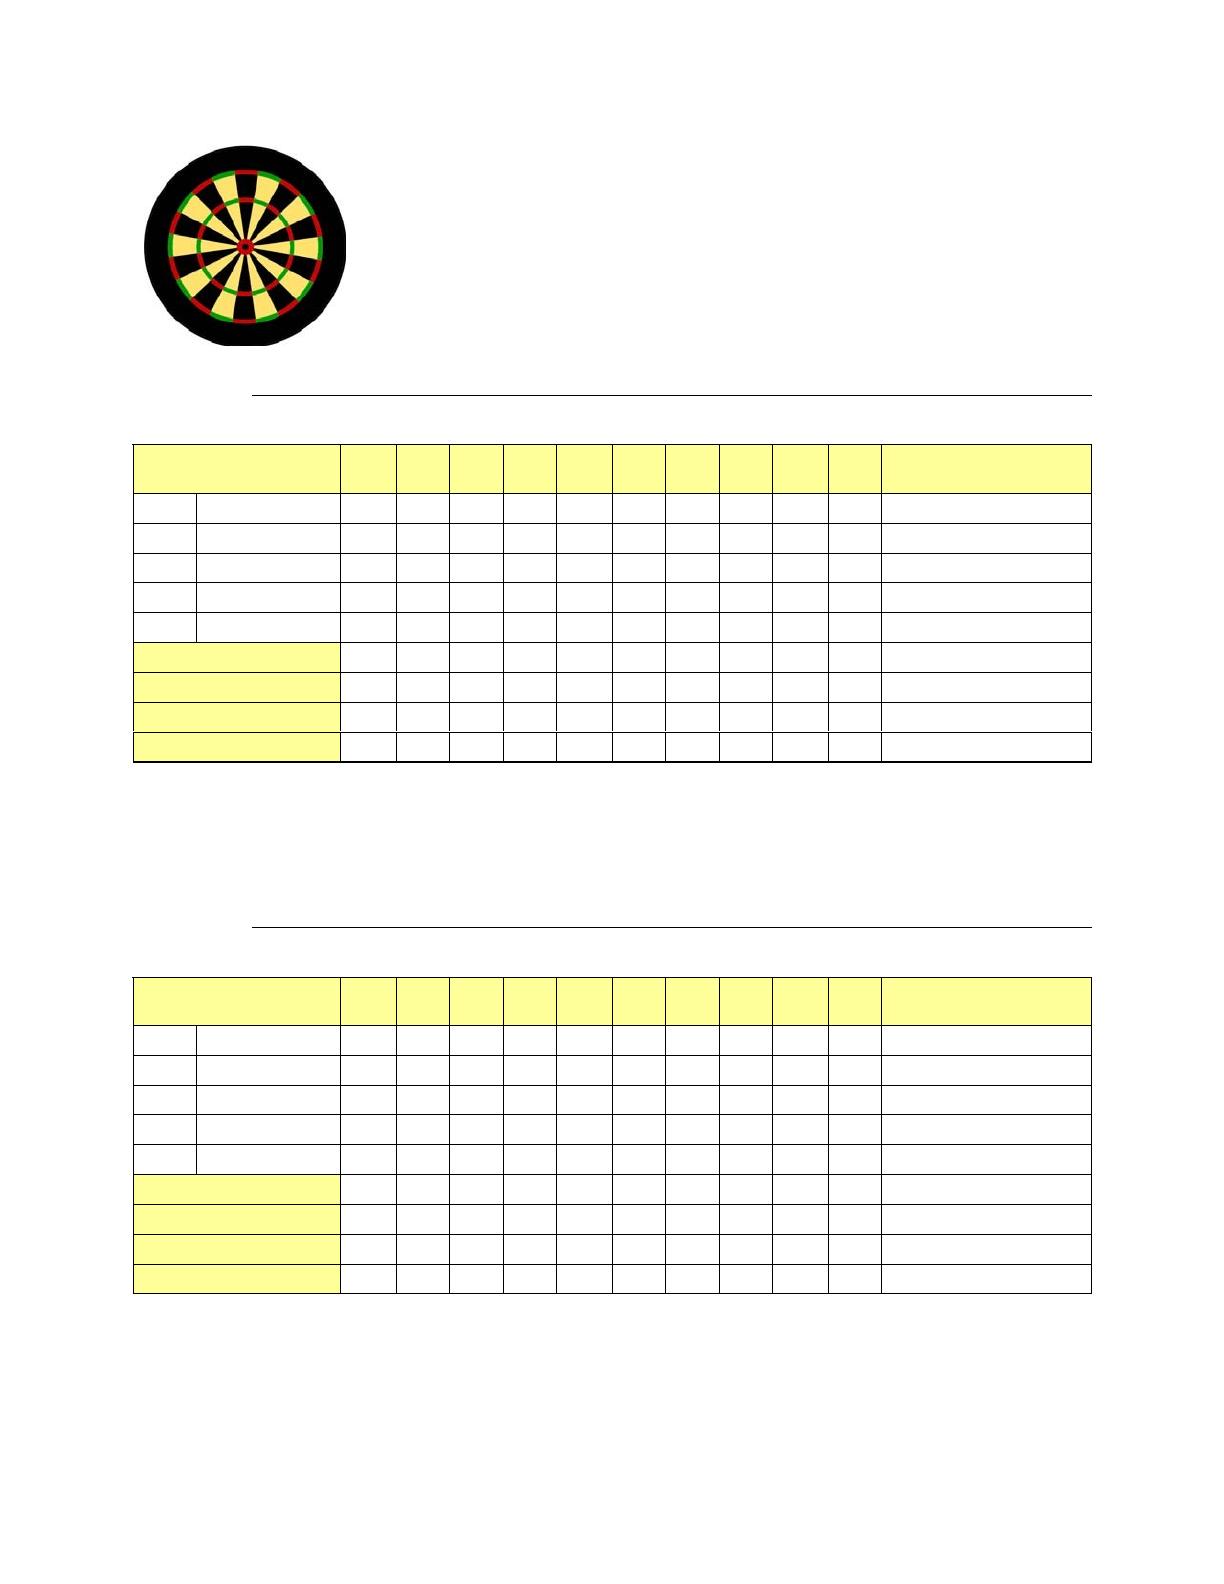 darts score sheet free download